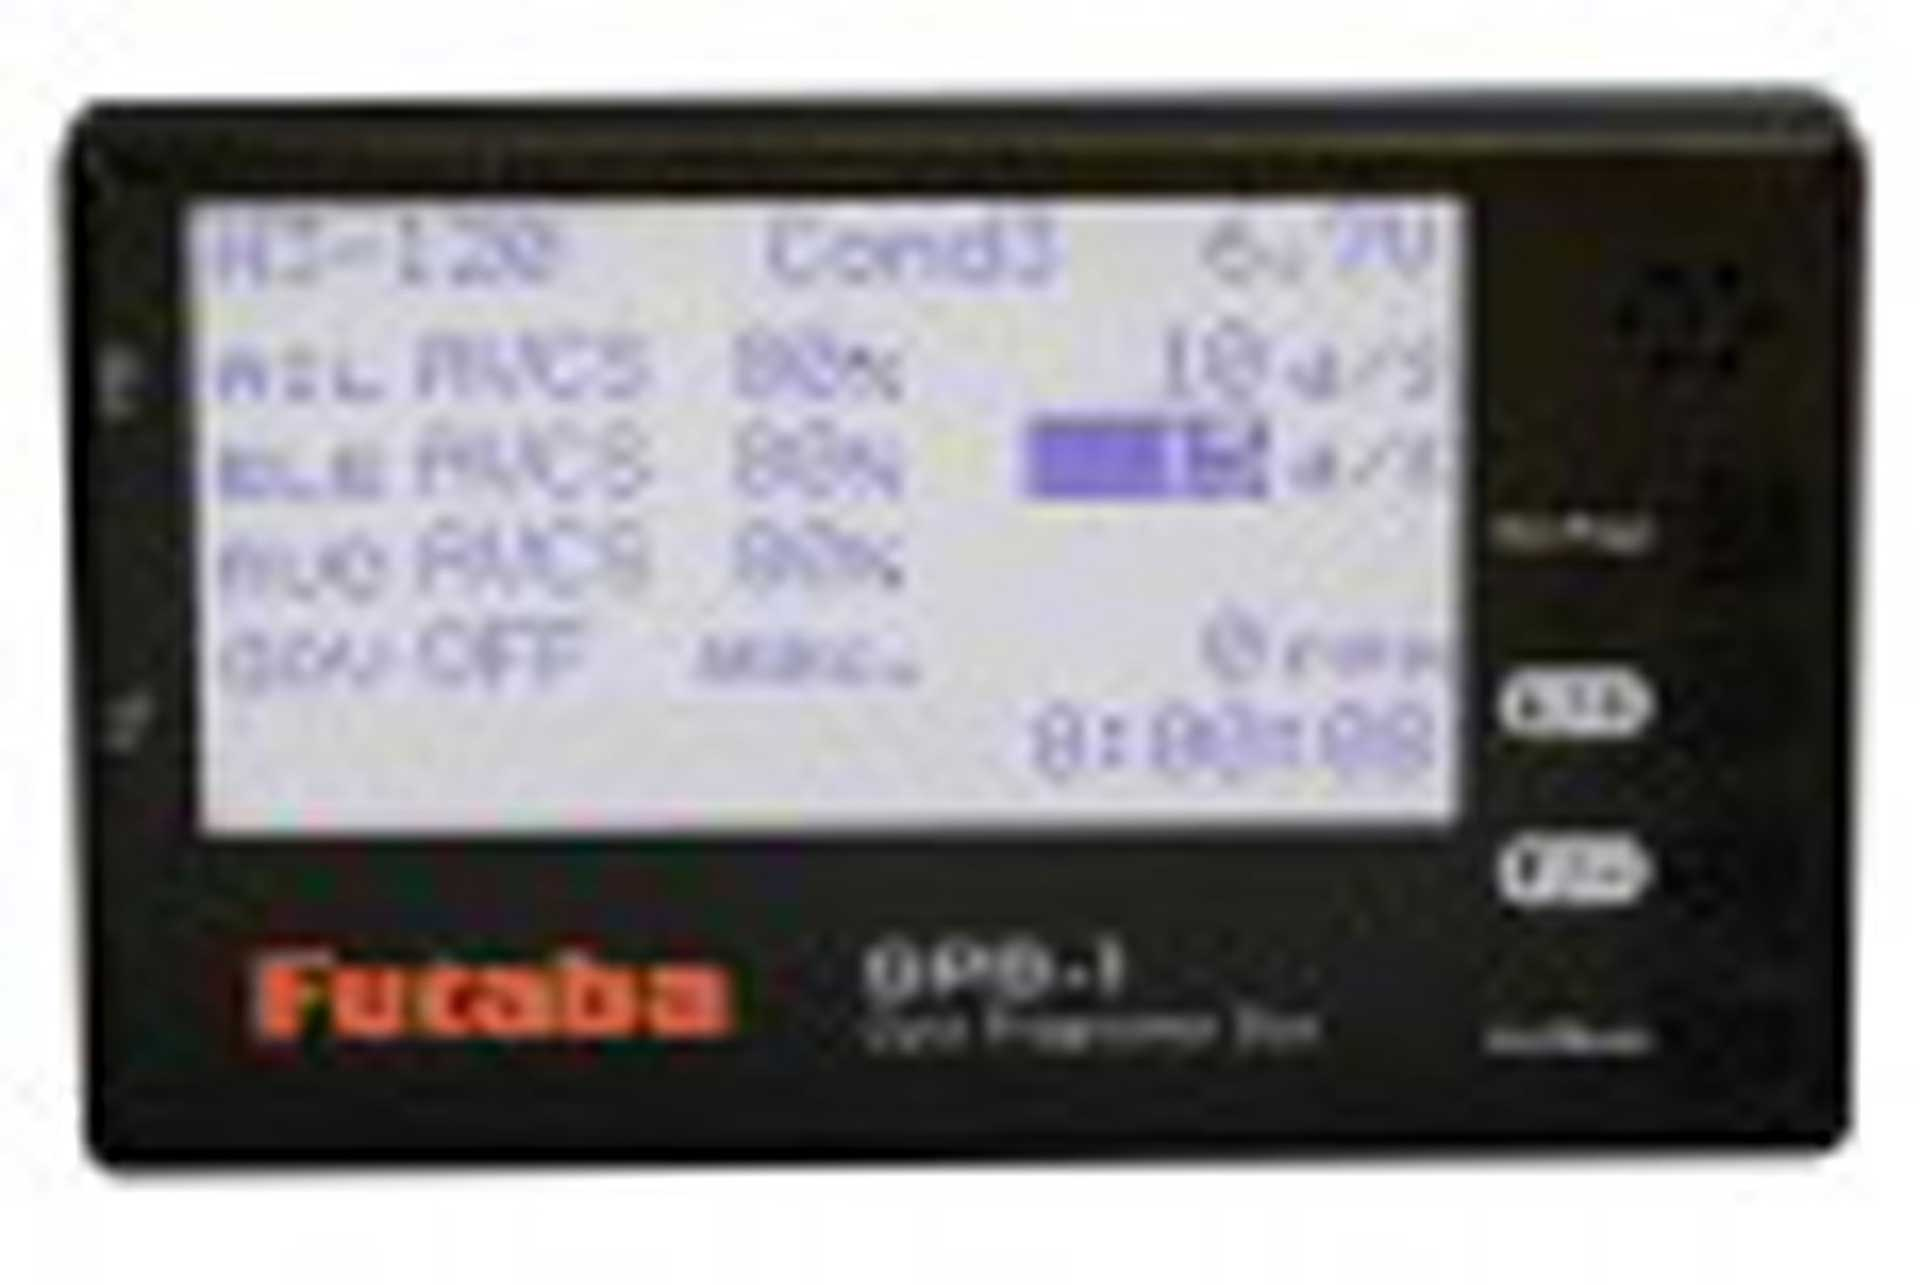 FUTABA CGY760R 3-AXIS GYRO WITH RECEIVER AND GOVERNOR (WITHOUT PROGRAMMING BOX)